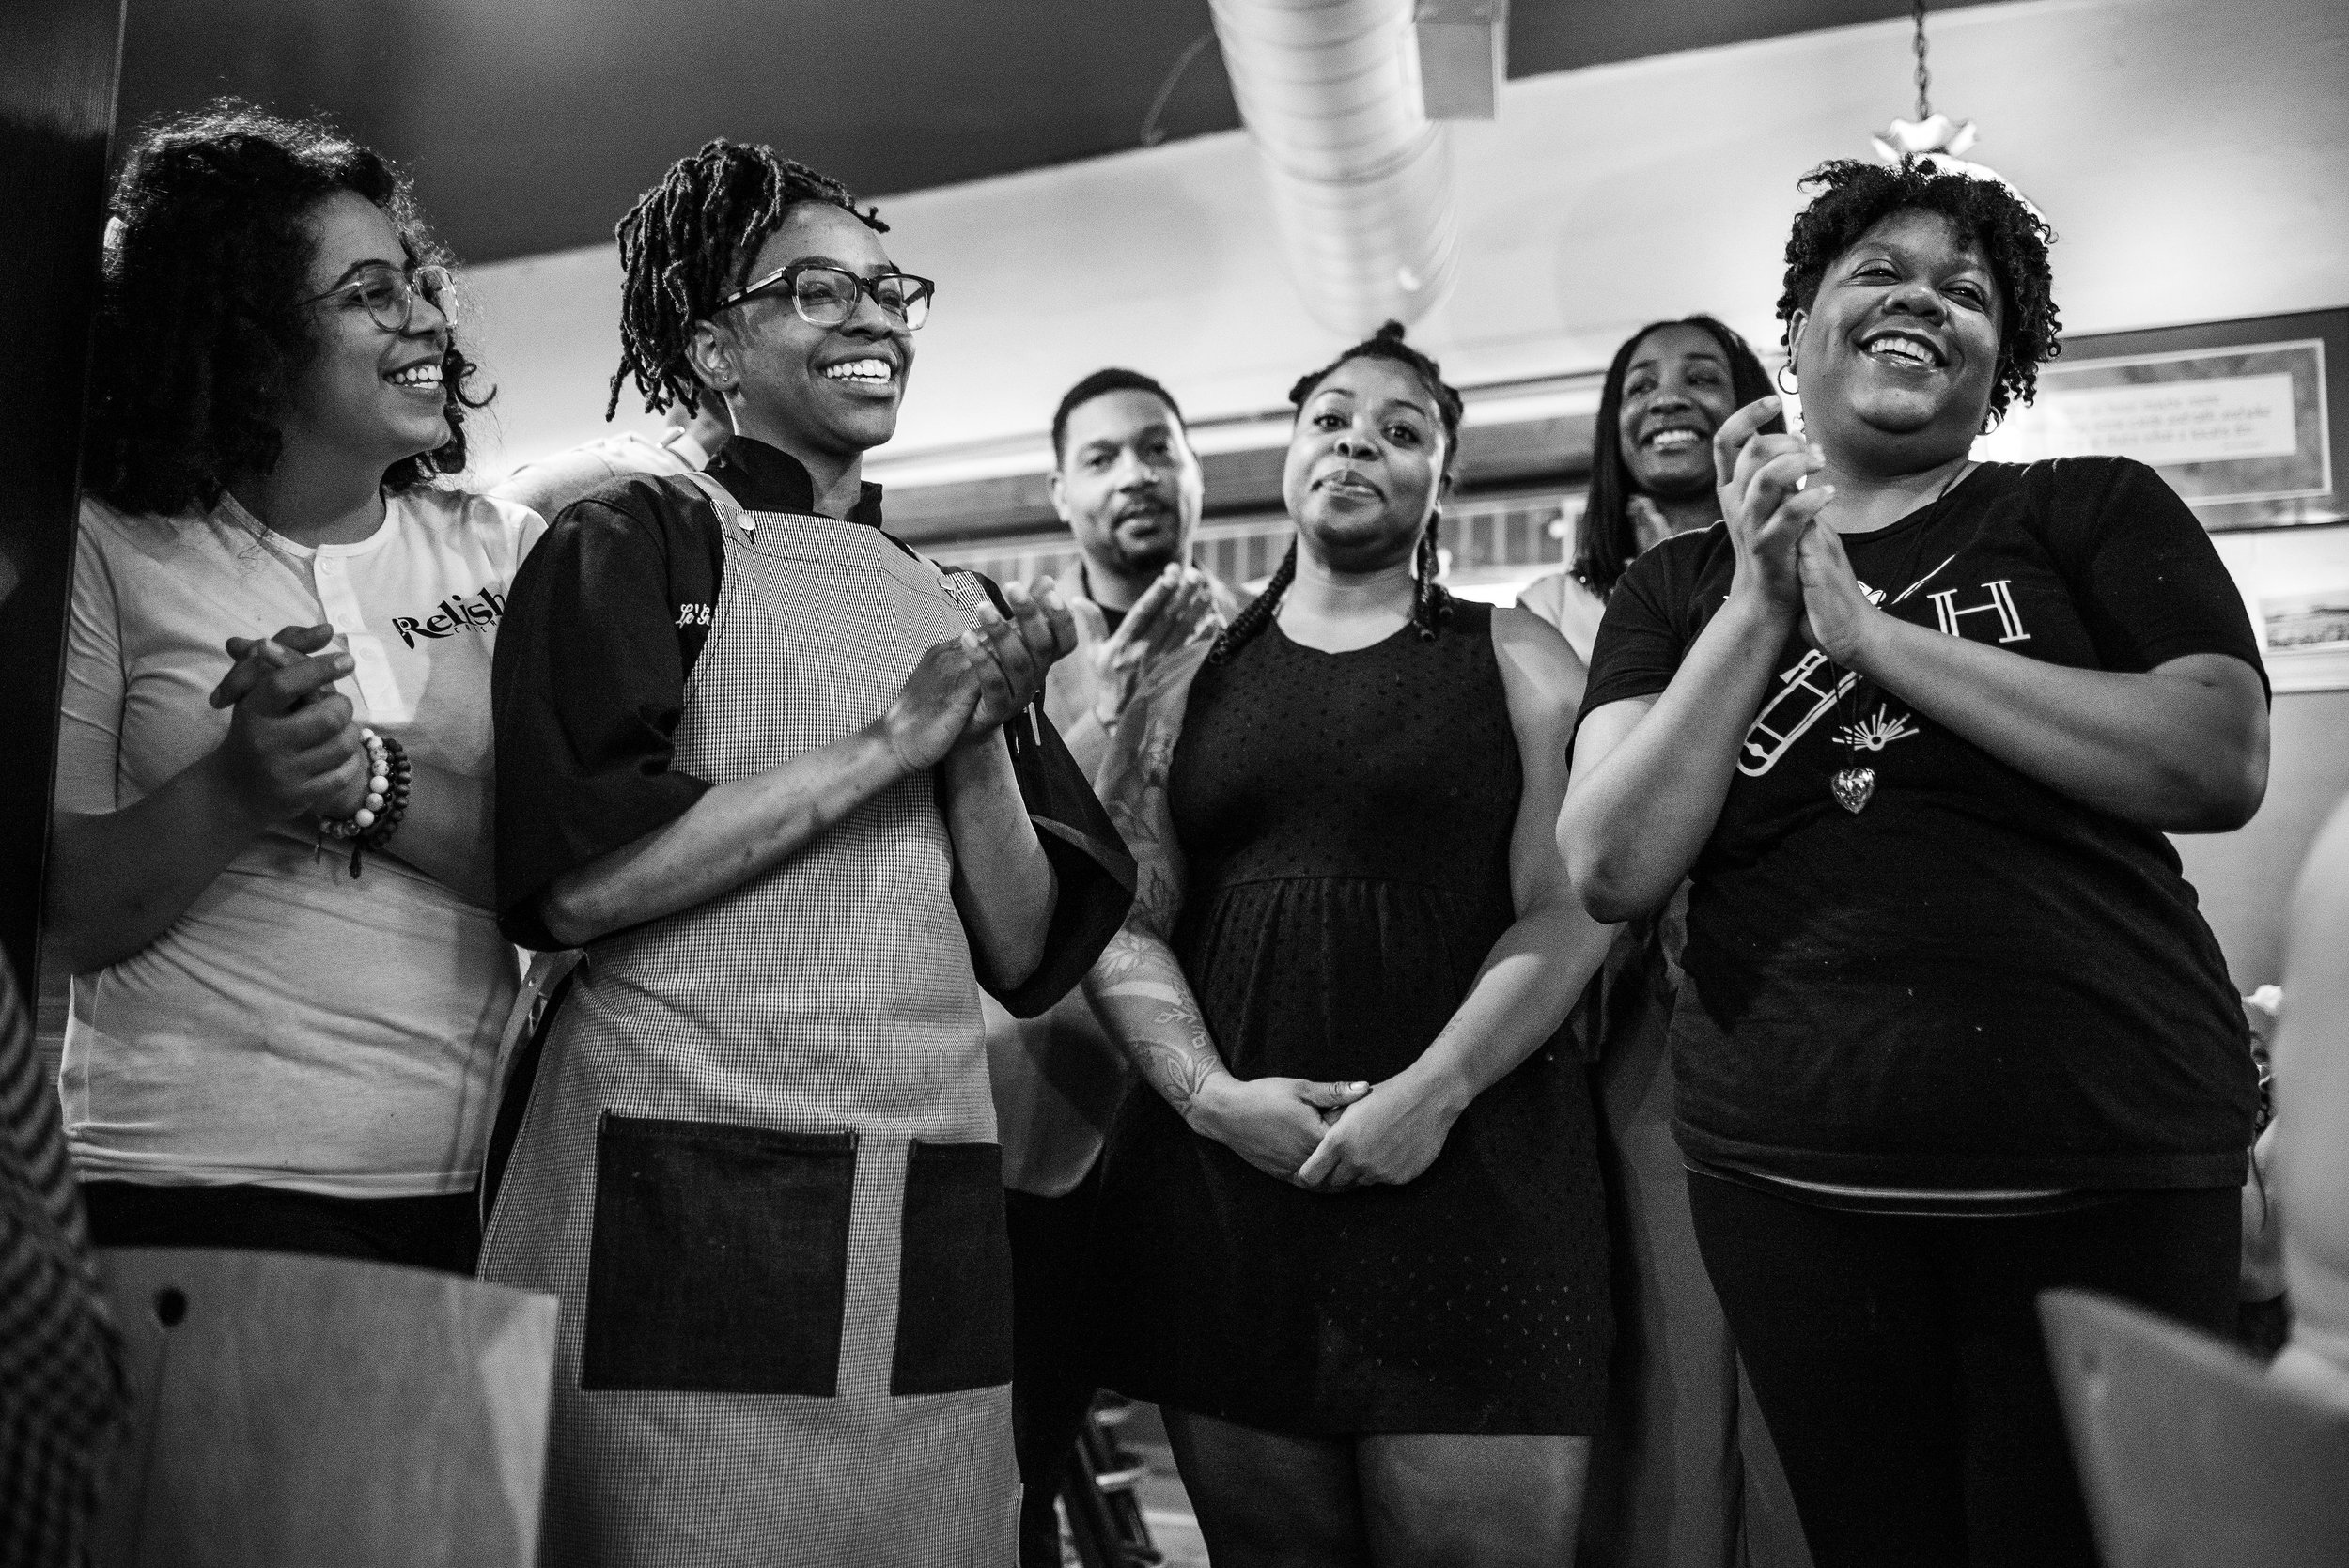 Brittiany Peeler (far left) and Le'Genevieve Squires (second from left) of Relish Catering. Viana Rickett (center) of Simple Goodness. Lauren Daniels (second from right) of Sumptuous Spirits. Ederique Goudia (far right) of Gabriel Hall.